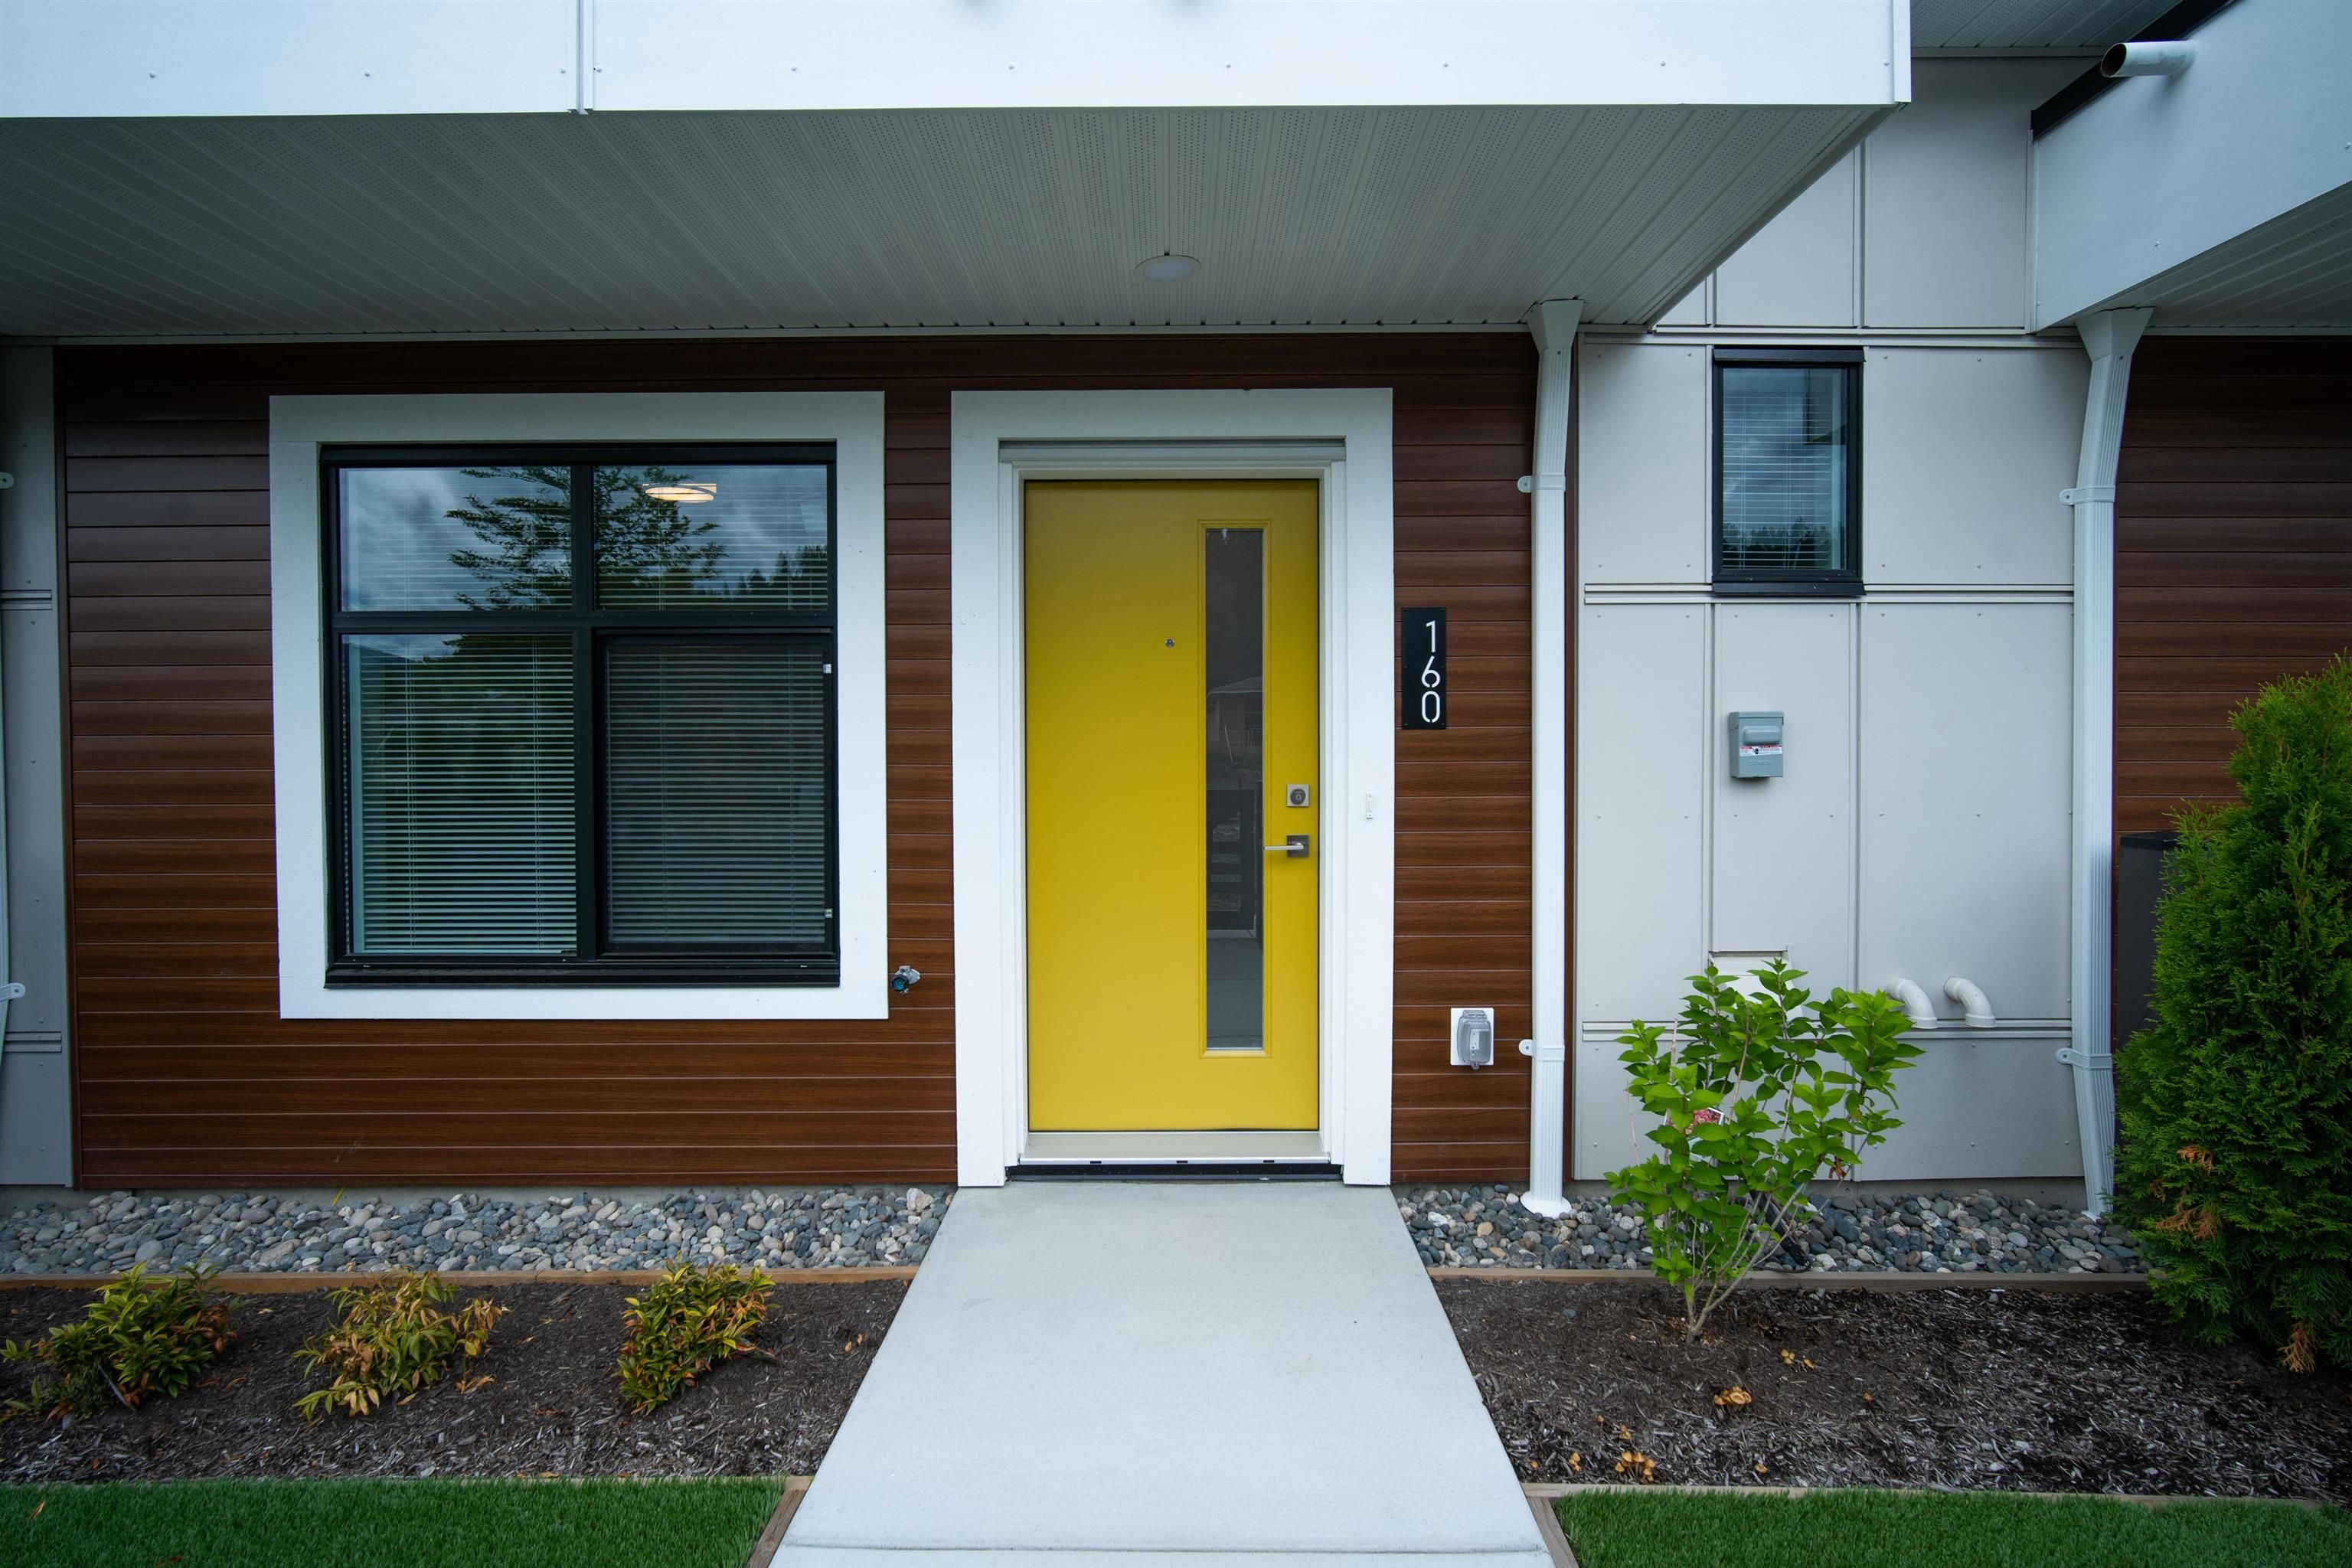 Main Photo: 204 46150 THOMAS Road in Chilliwack: Sardis East Vedder Rd Townhouse for sale (Sardis)  : MLS®# R2609477